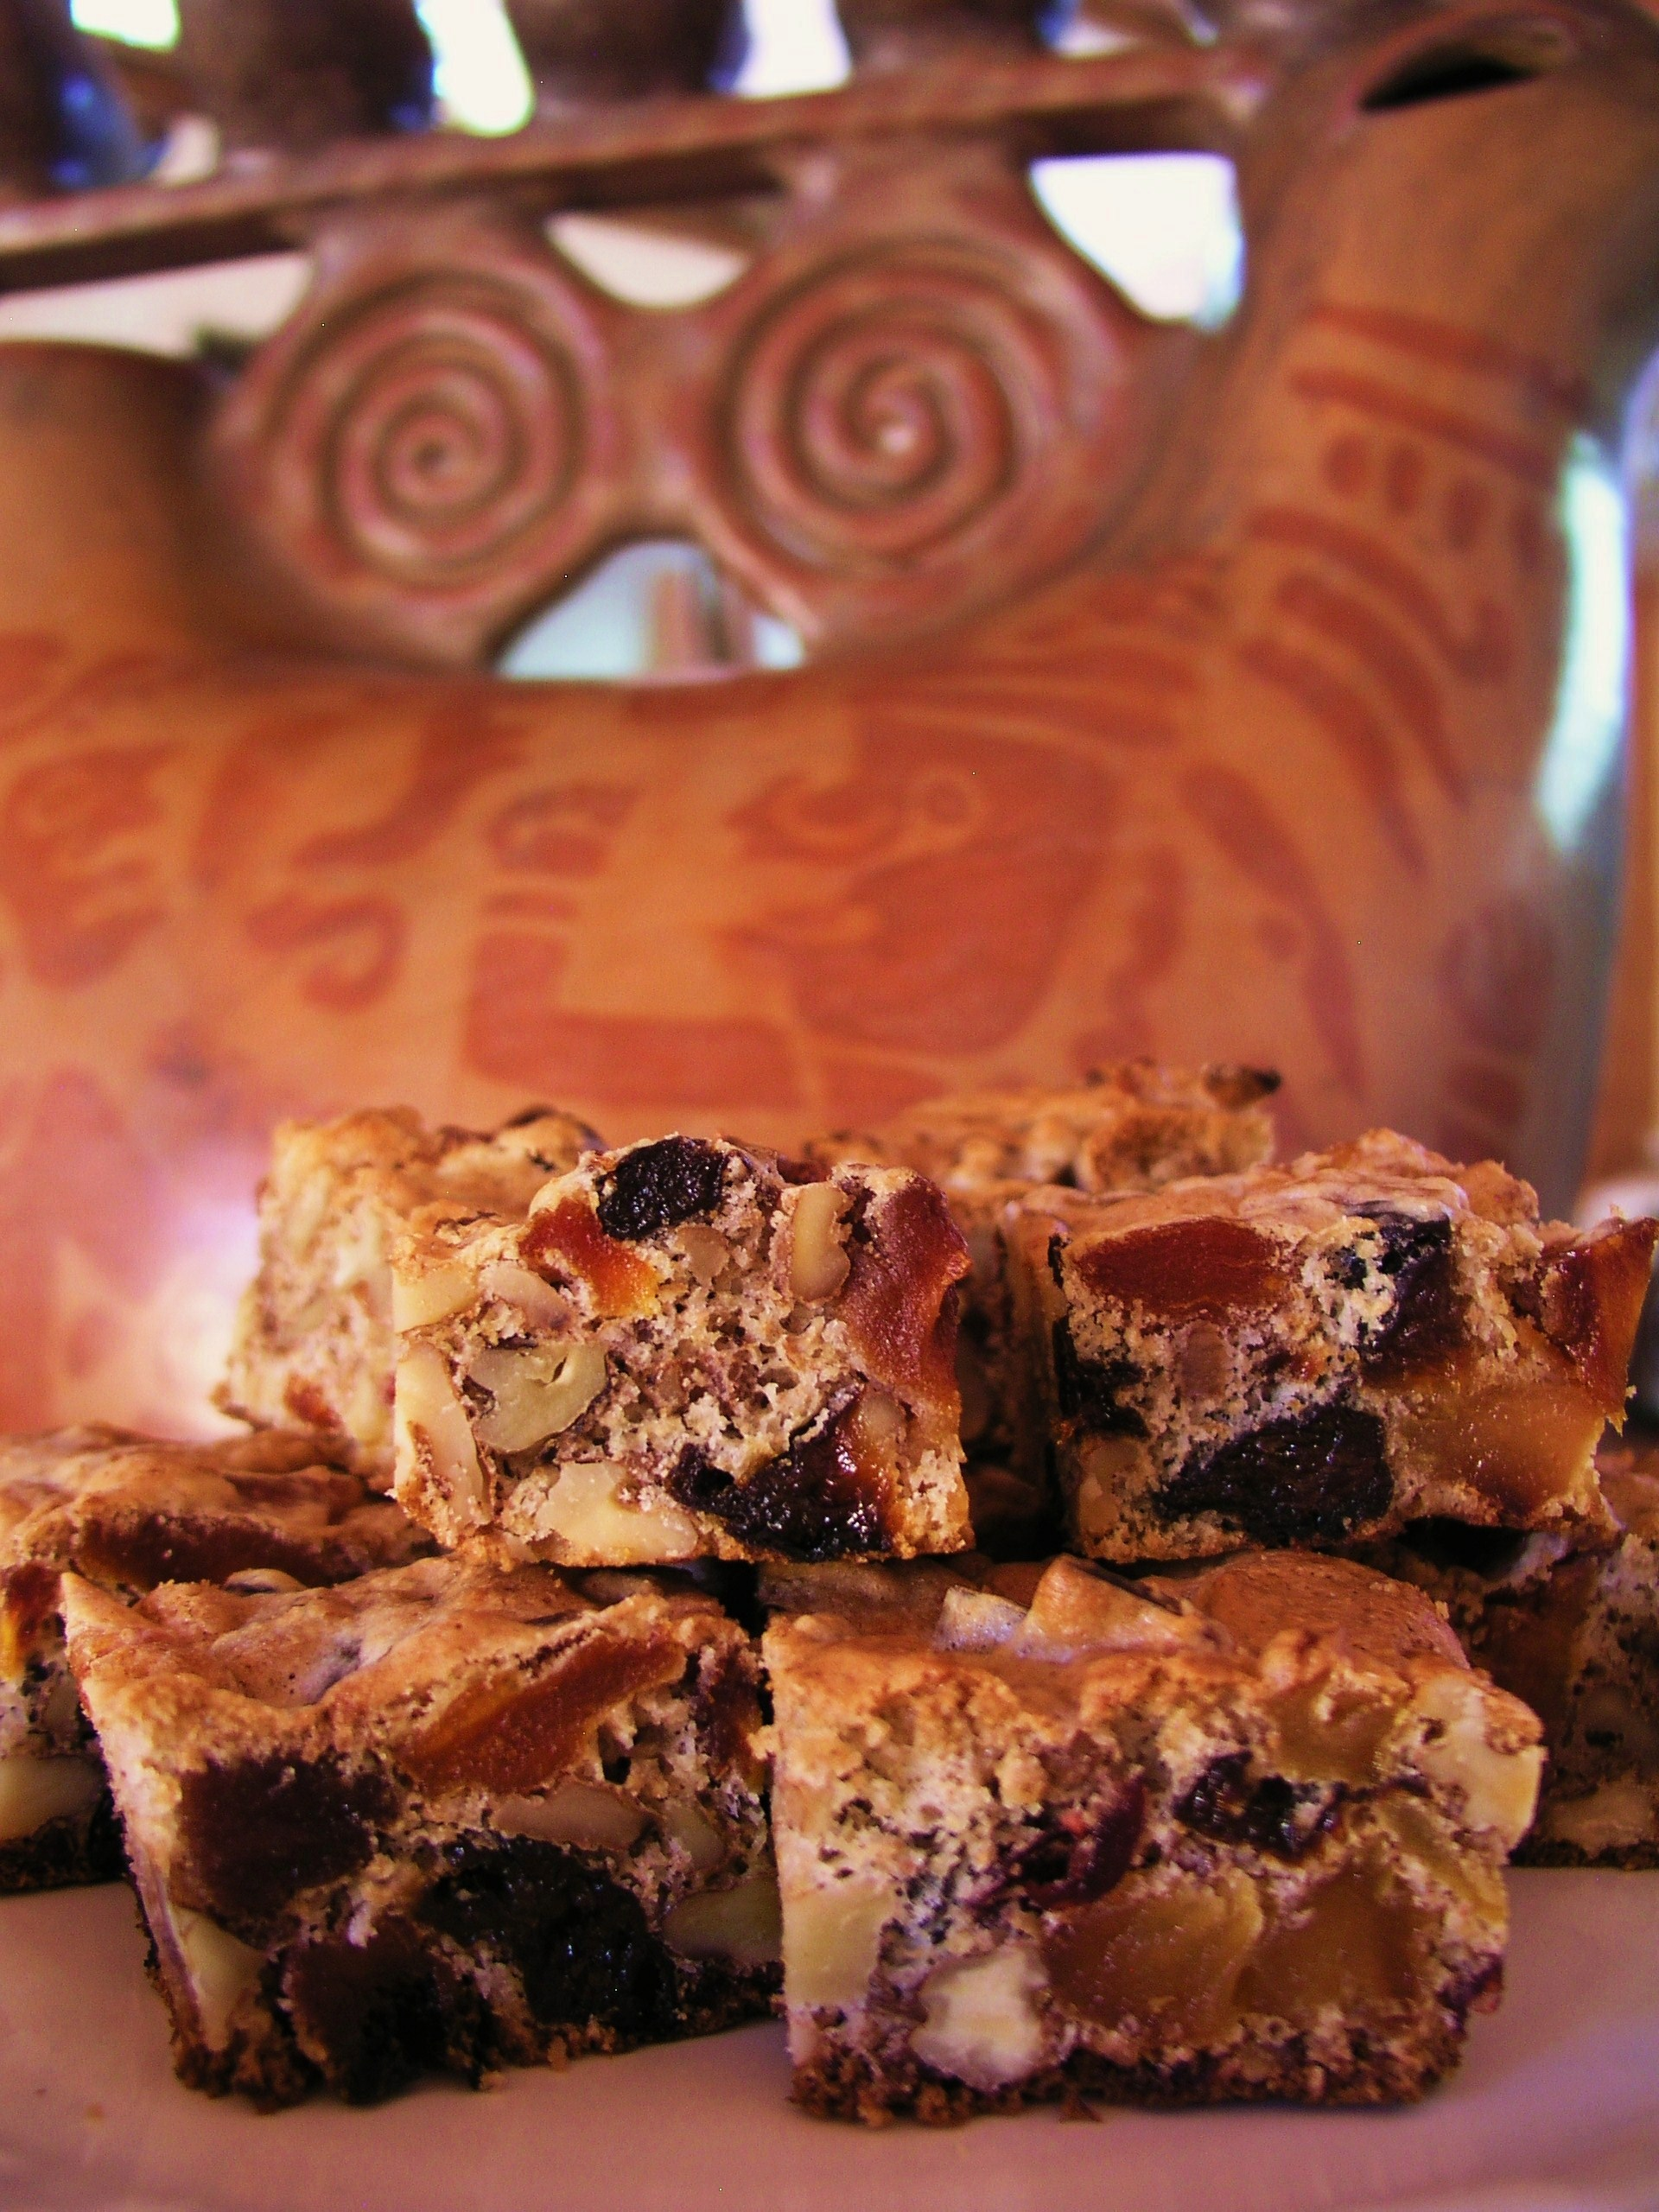 Holiday fruitcake bars inspired by David Lebovitz | Cooking in Mexico